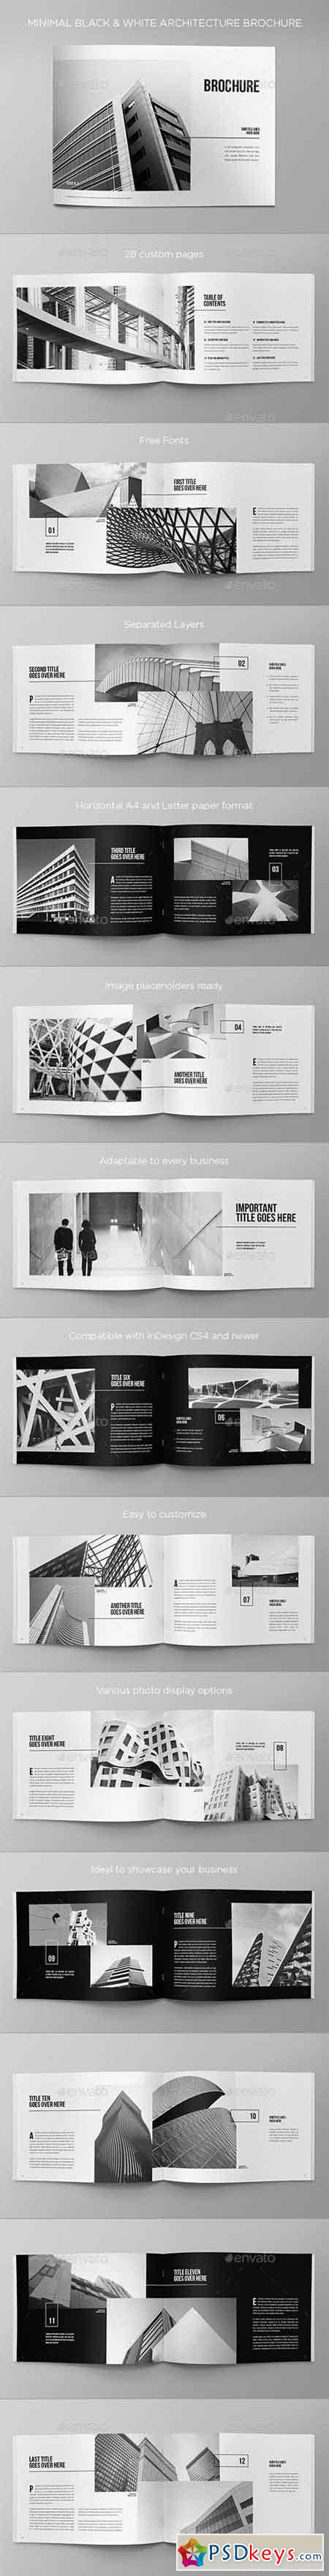 Minimal Black & White Architecture Brochure 20502840